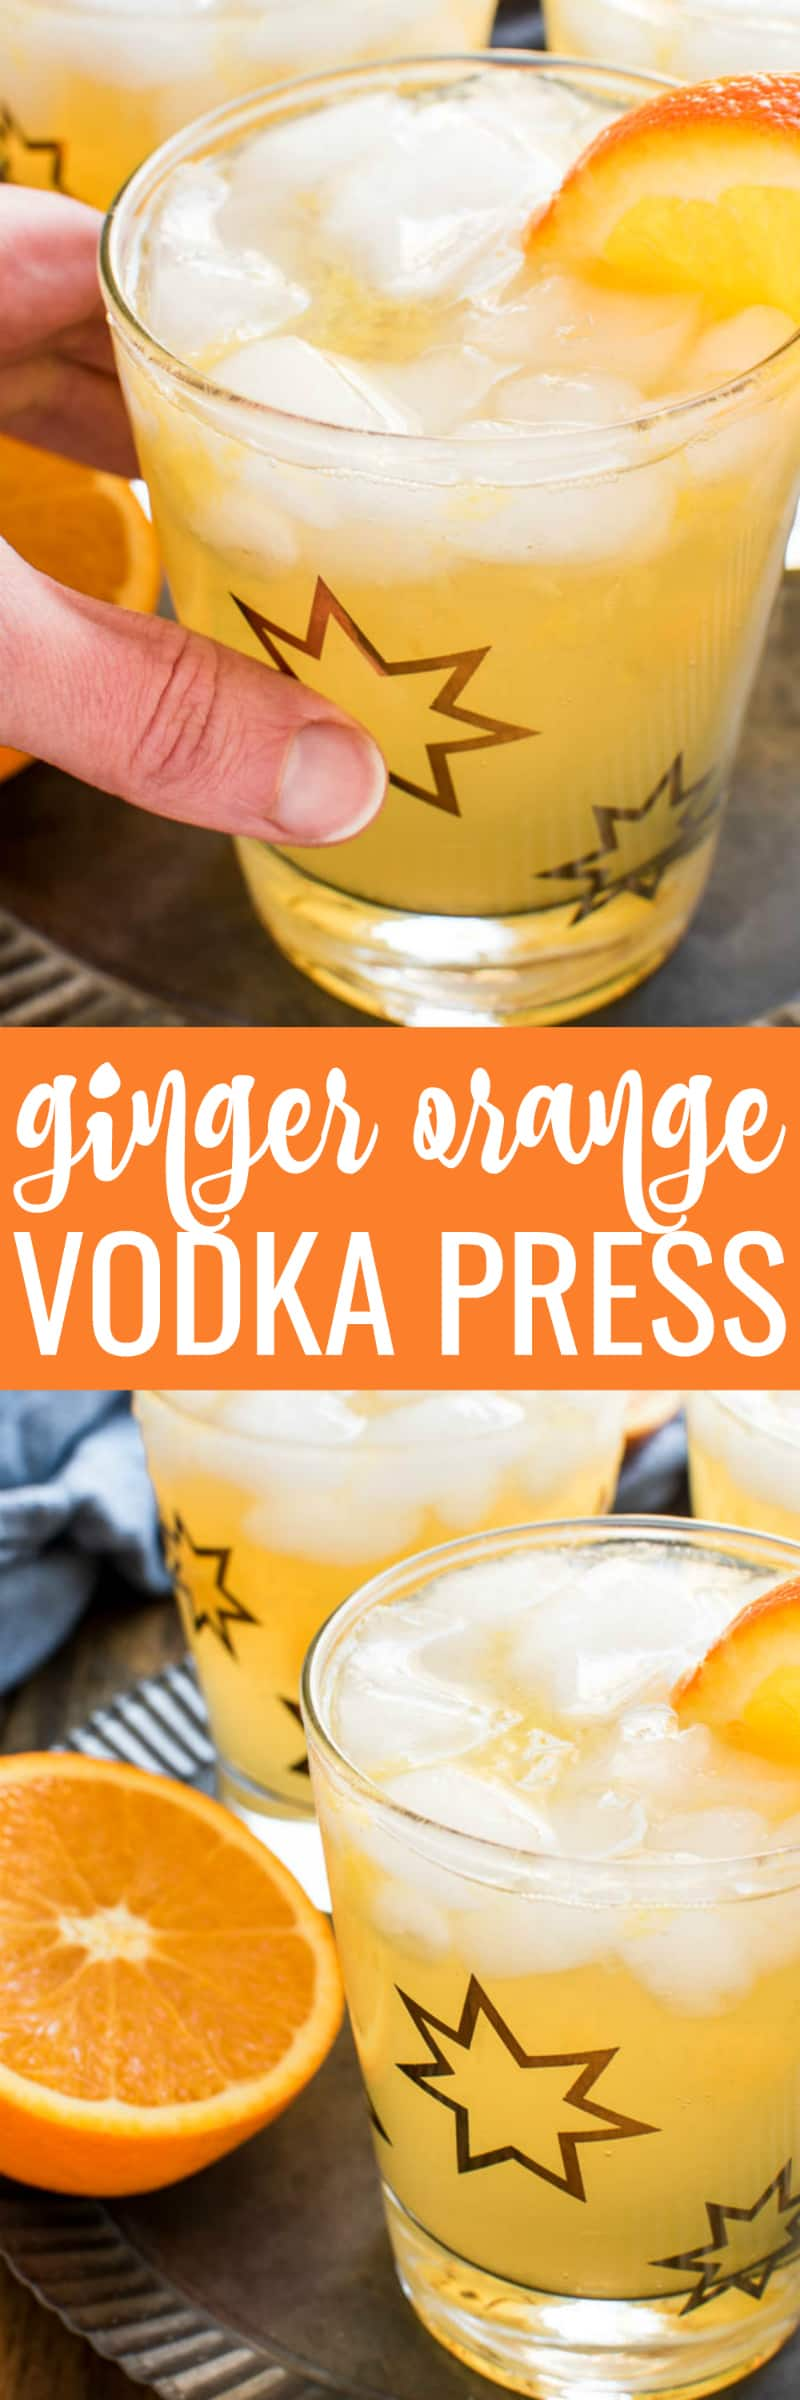 Looking for a delicious new winter cocktail? Look no further...this Ginger Orange Vodka Press is it! Made with just 4 ingredients and so easy to prepare, this drink has the perfect blend of flavors with just the right amount of sweetness. Ideal for happy hour, ladies' night, or even brunch, this cocktail is a great alternative to sugary drinks and can easily be adjusted to suit your tastes. And since oranges are a favorite any time of year, this Ginger Orange Vodka Press is sure to become a new favorite for winter, summer, and all year round!